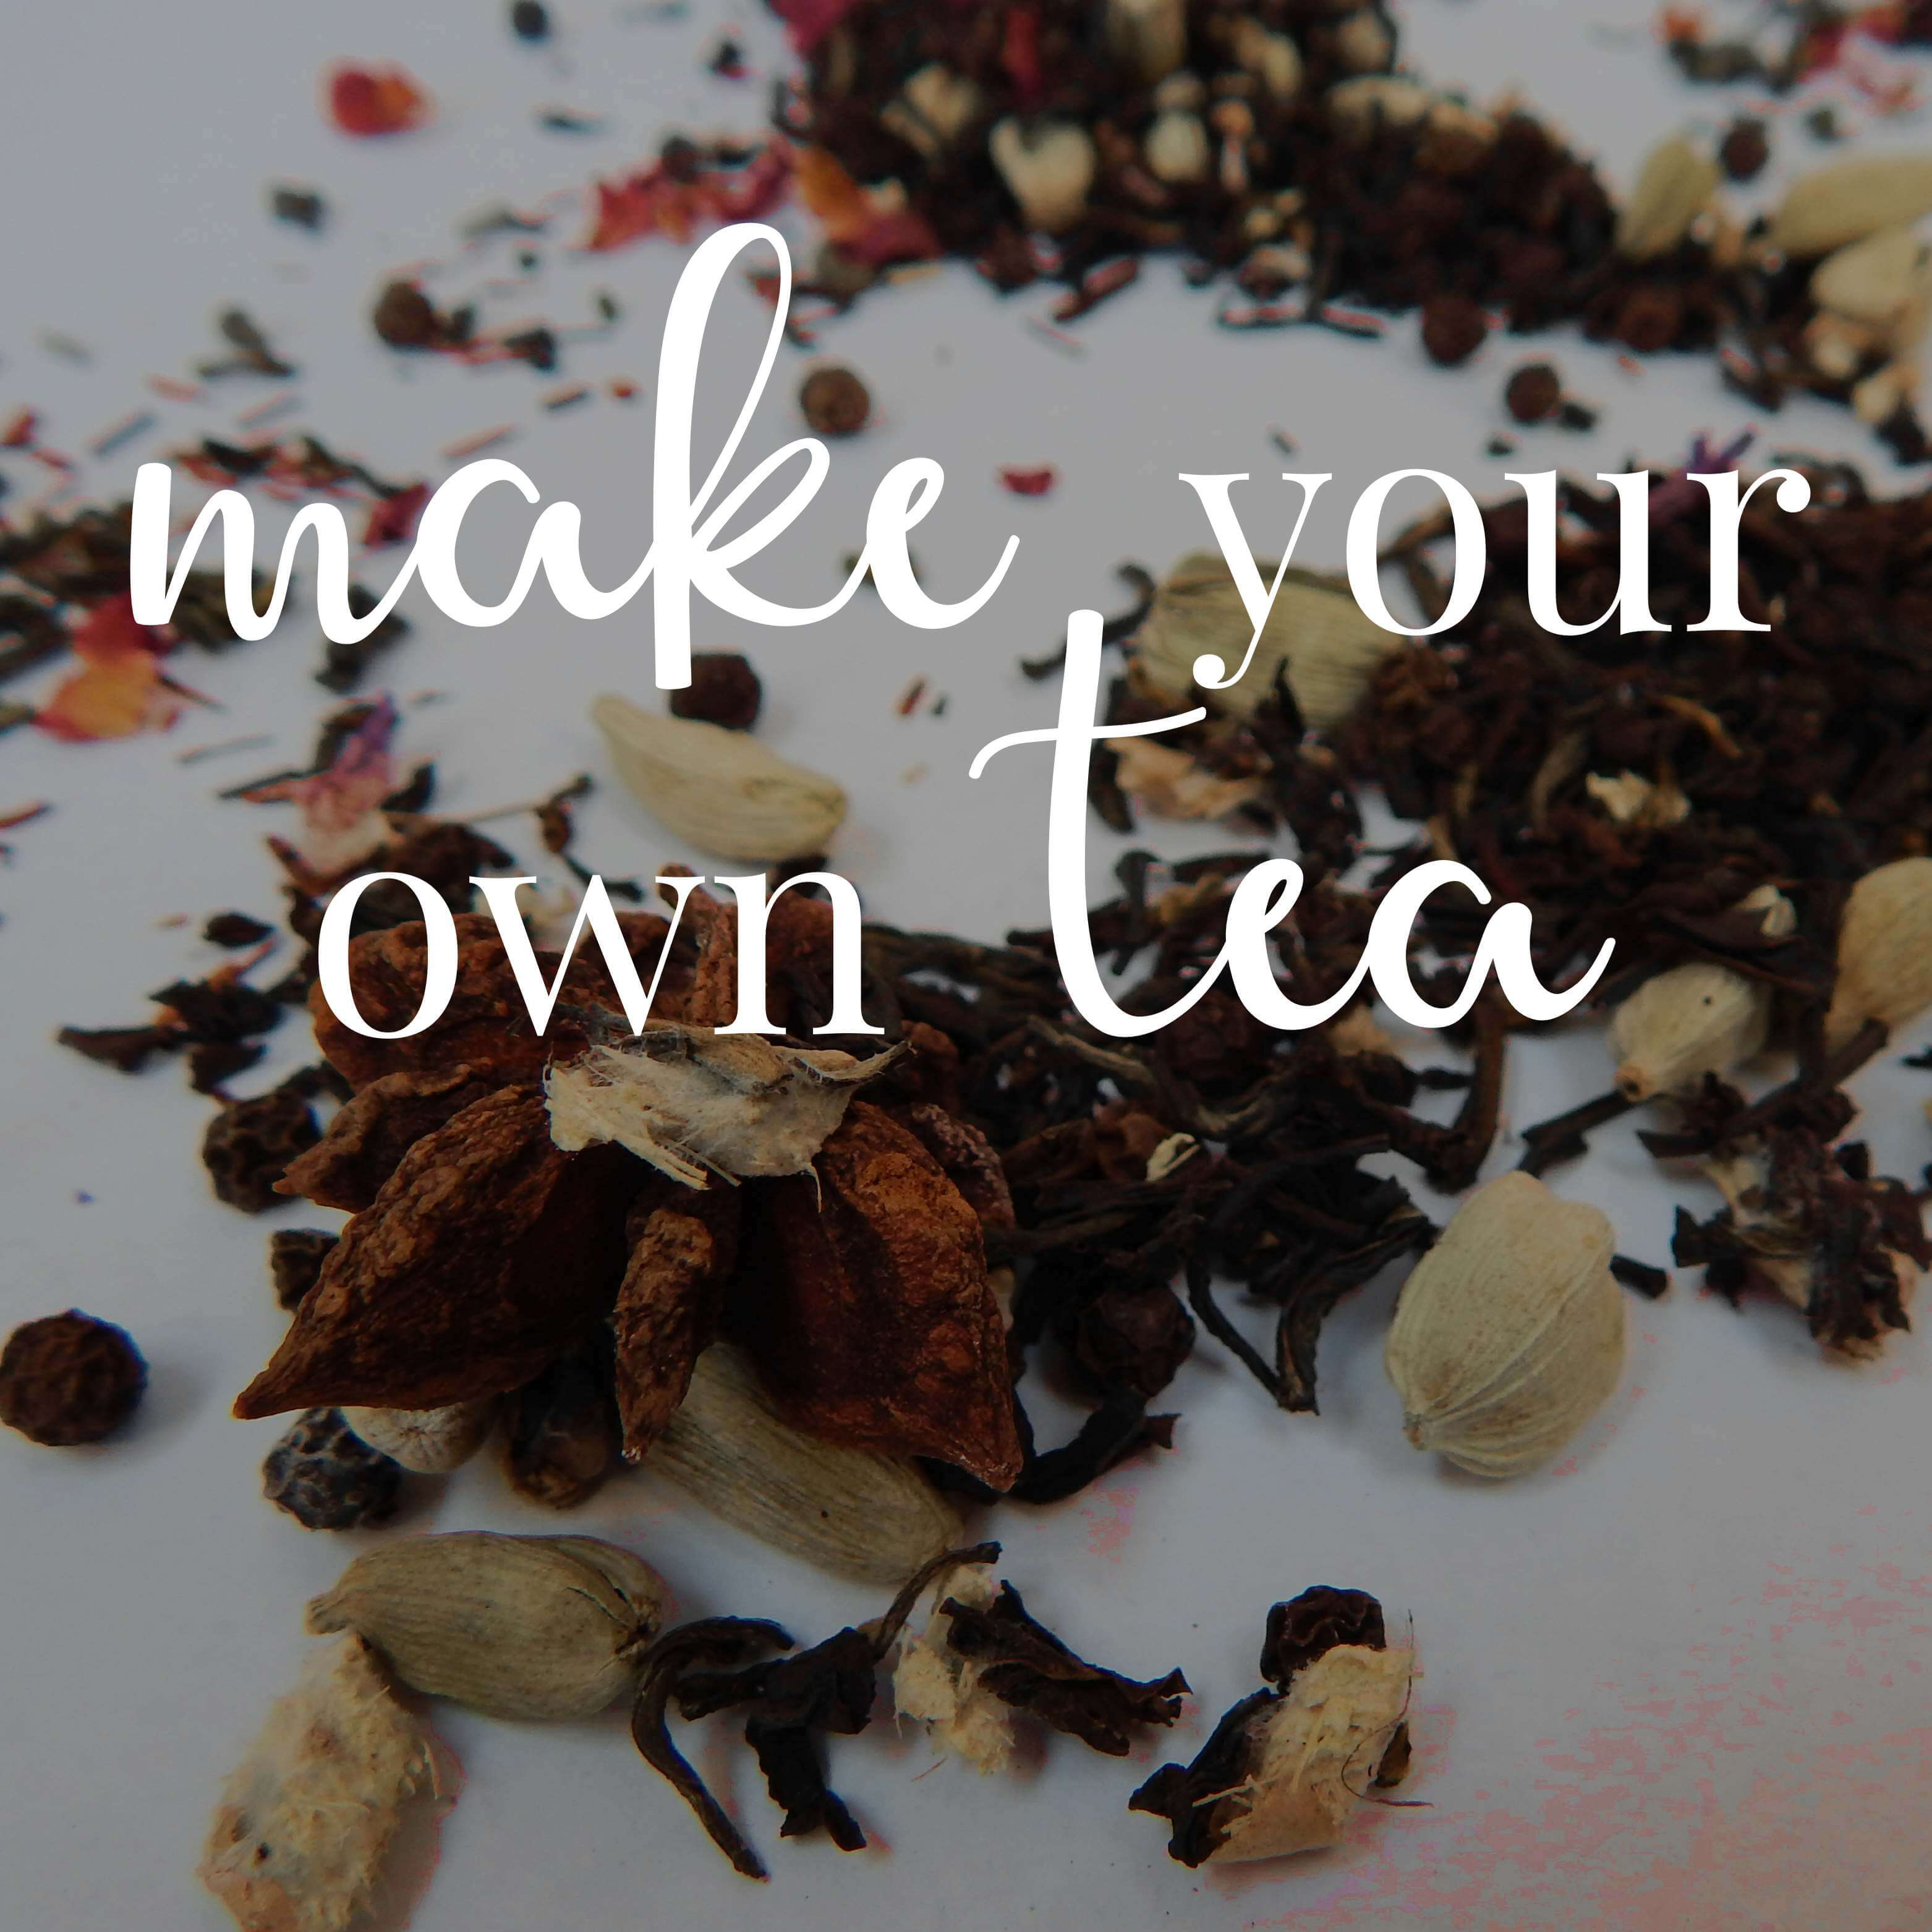 Avoid toxic plastic in tea bags: make your own healing loose leaf tea